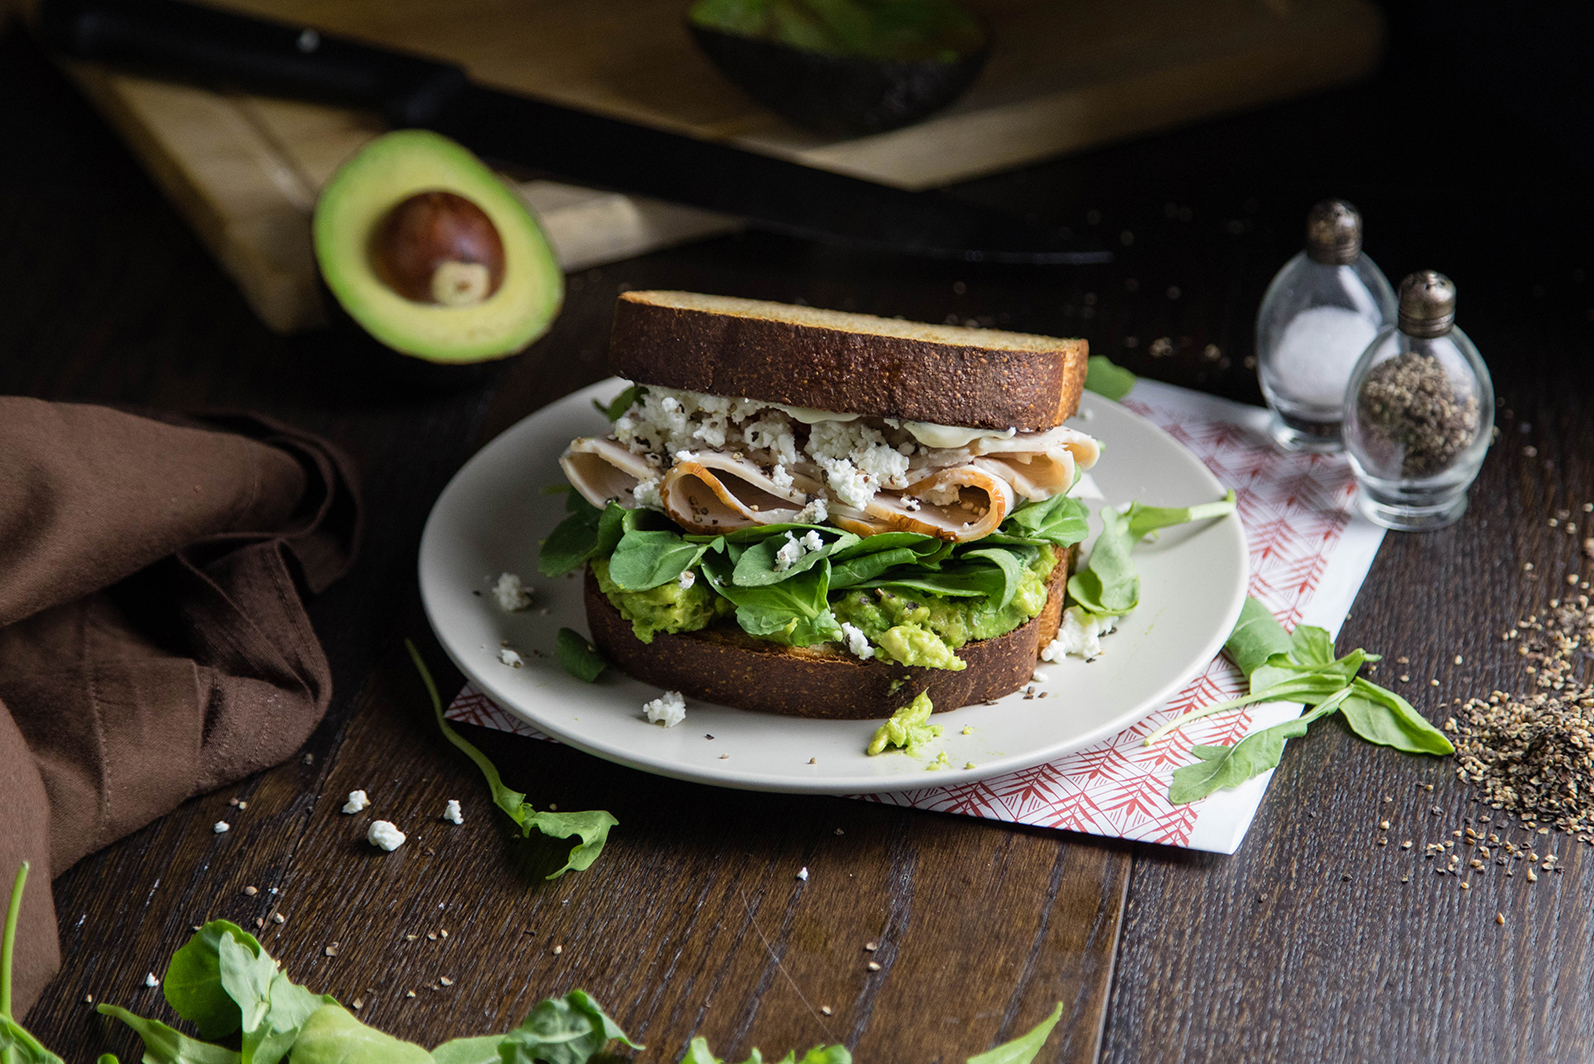 Turkey Avocado Sandwich | Specialty's Café & Bakery